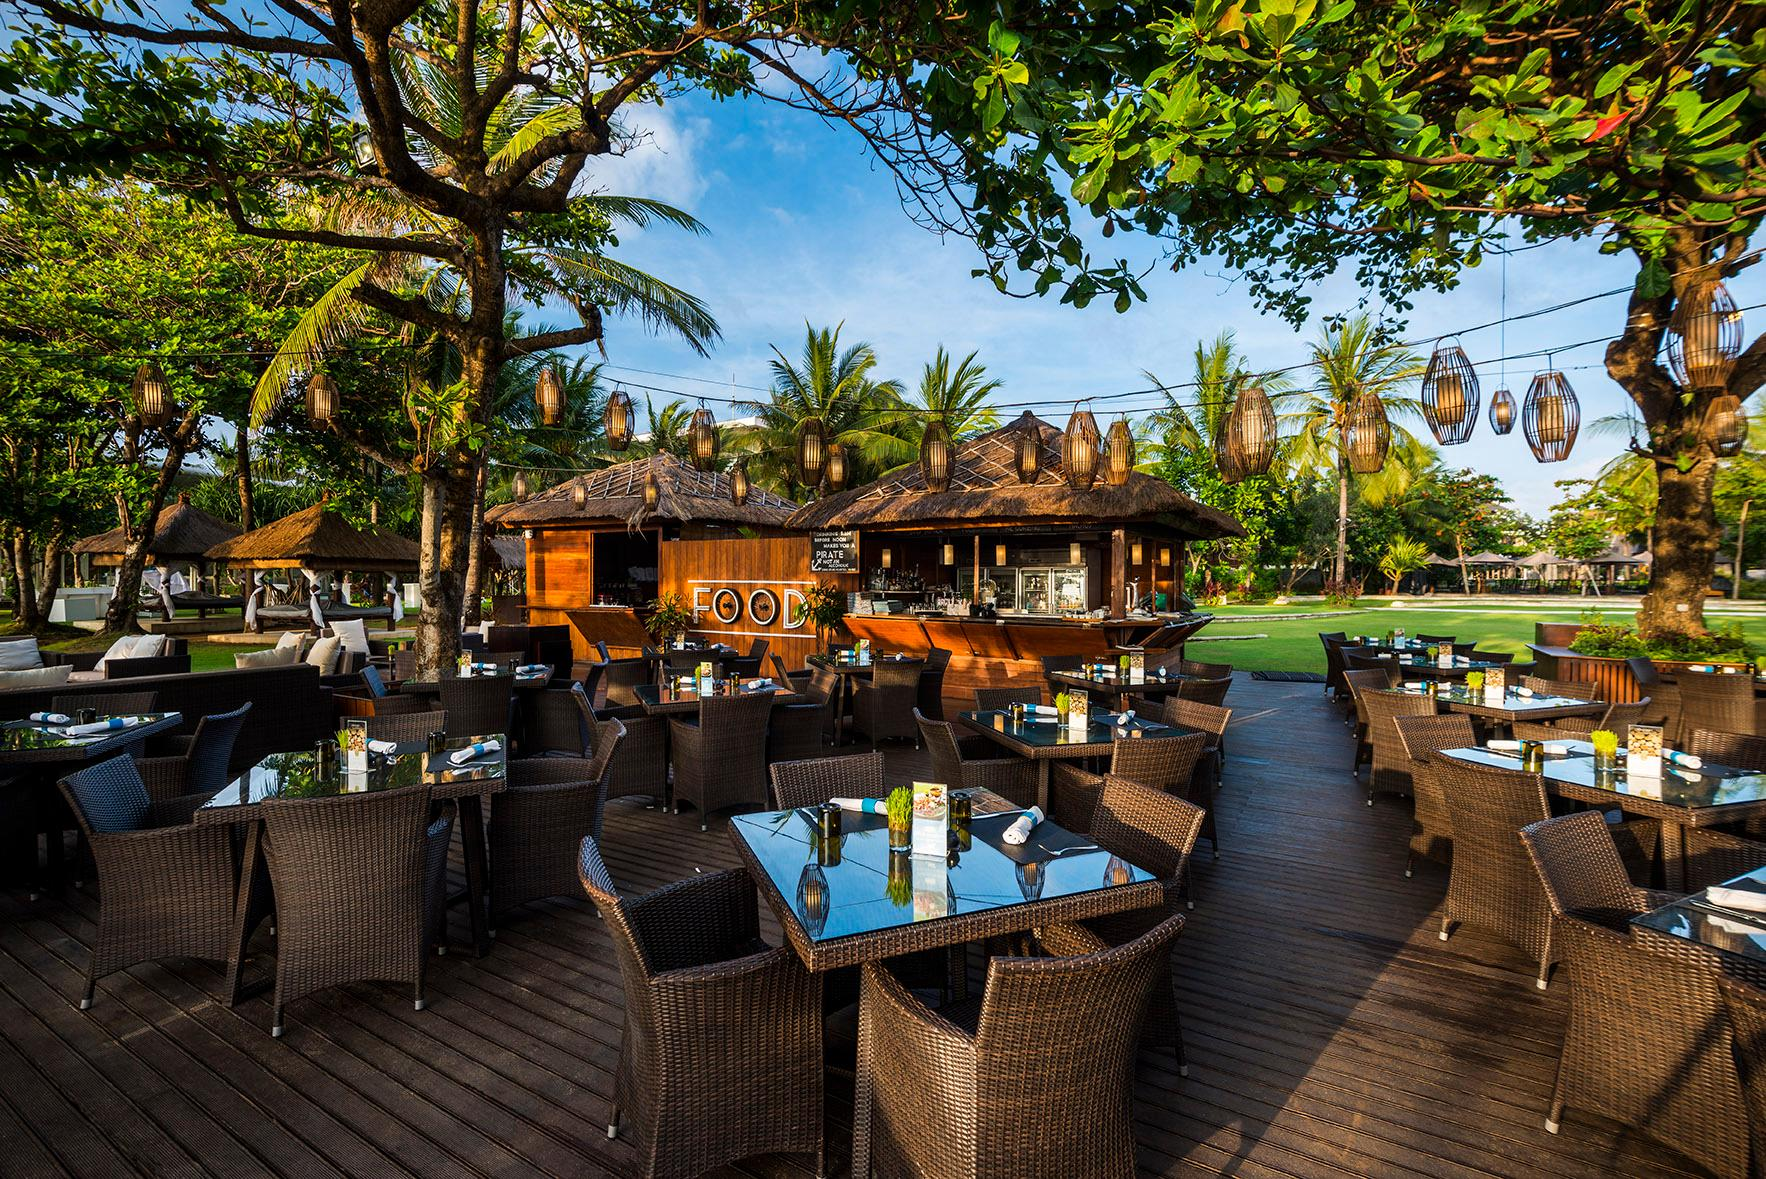 Toya Beach Bar & Grill at Sofitel